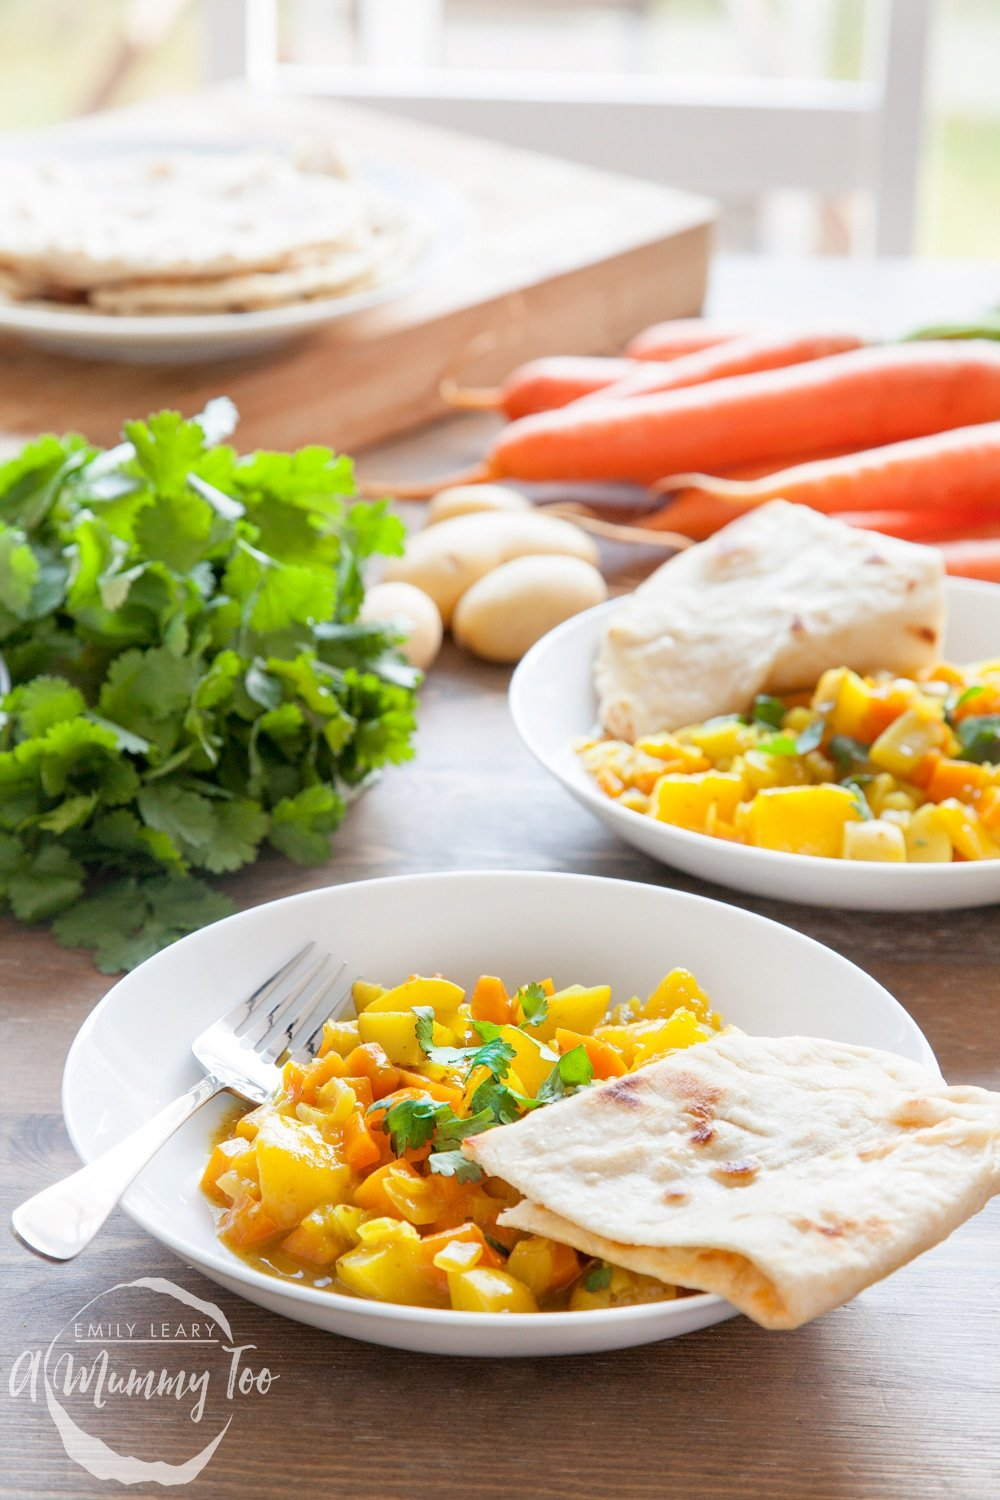 Home-grown carrot and mango curry with home-made spices and 5 minute naan bread - a delicious meal that kids can get involved with cooking!